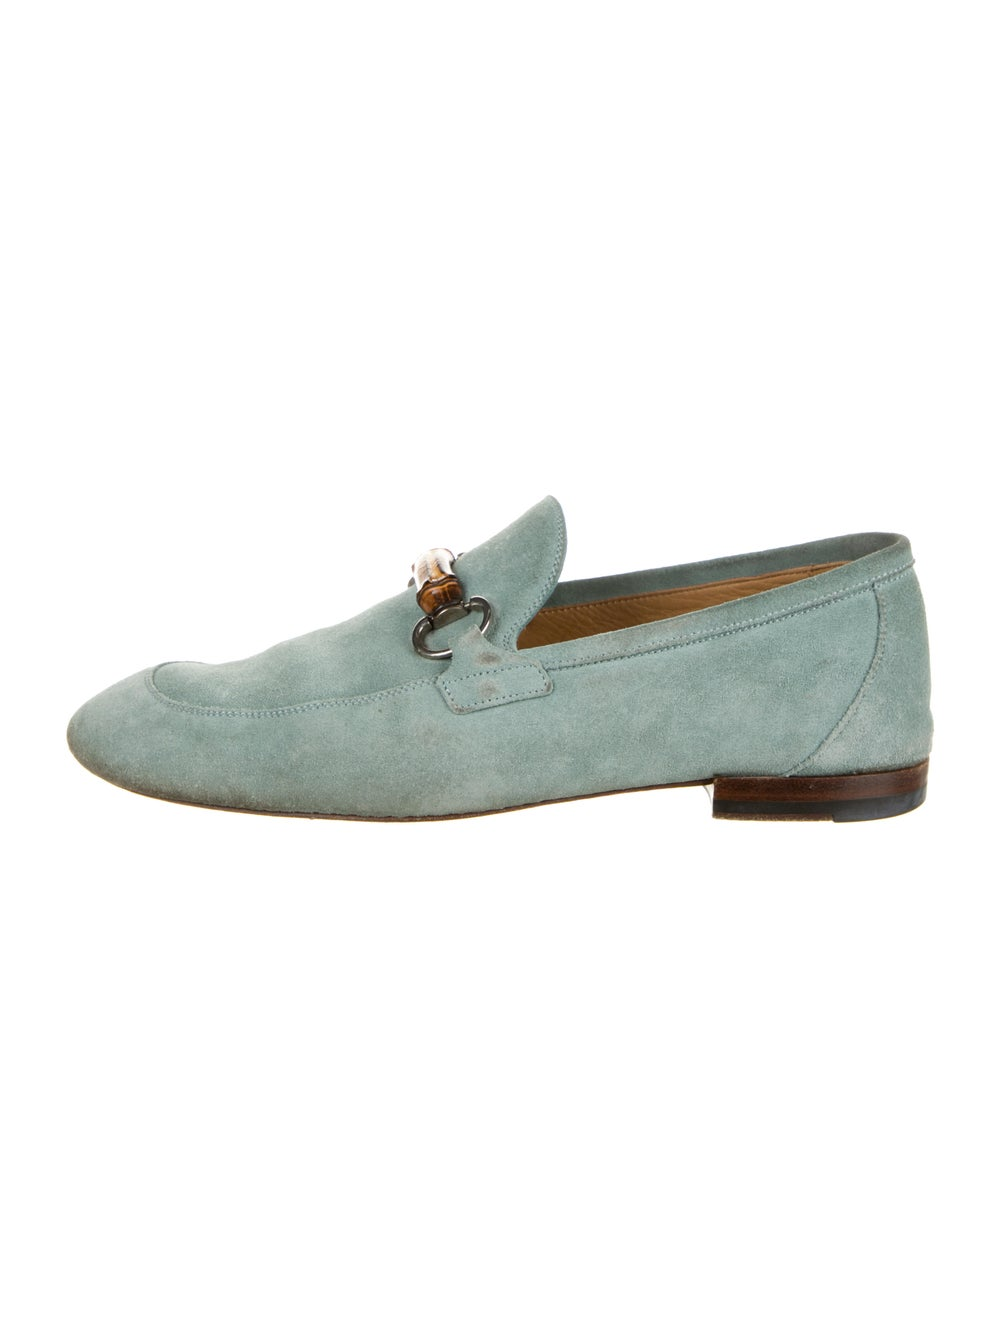 Gucci Horsebit Accent Suede Loafers Green - image 1